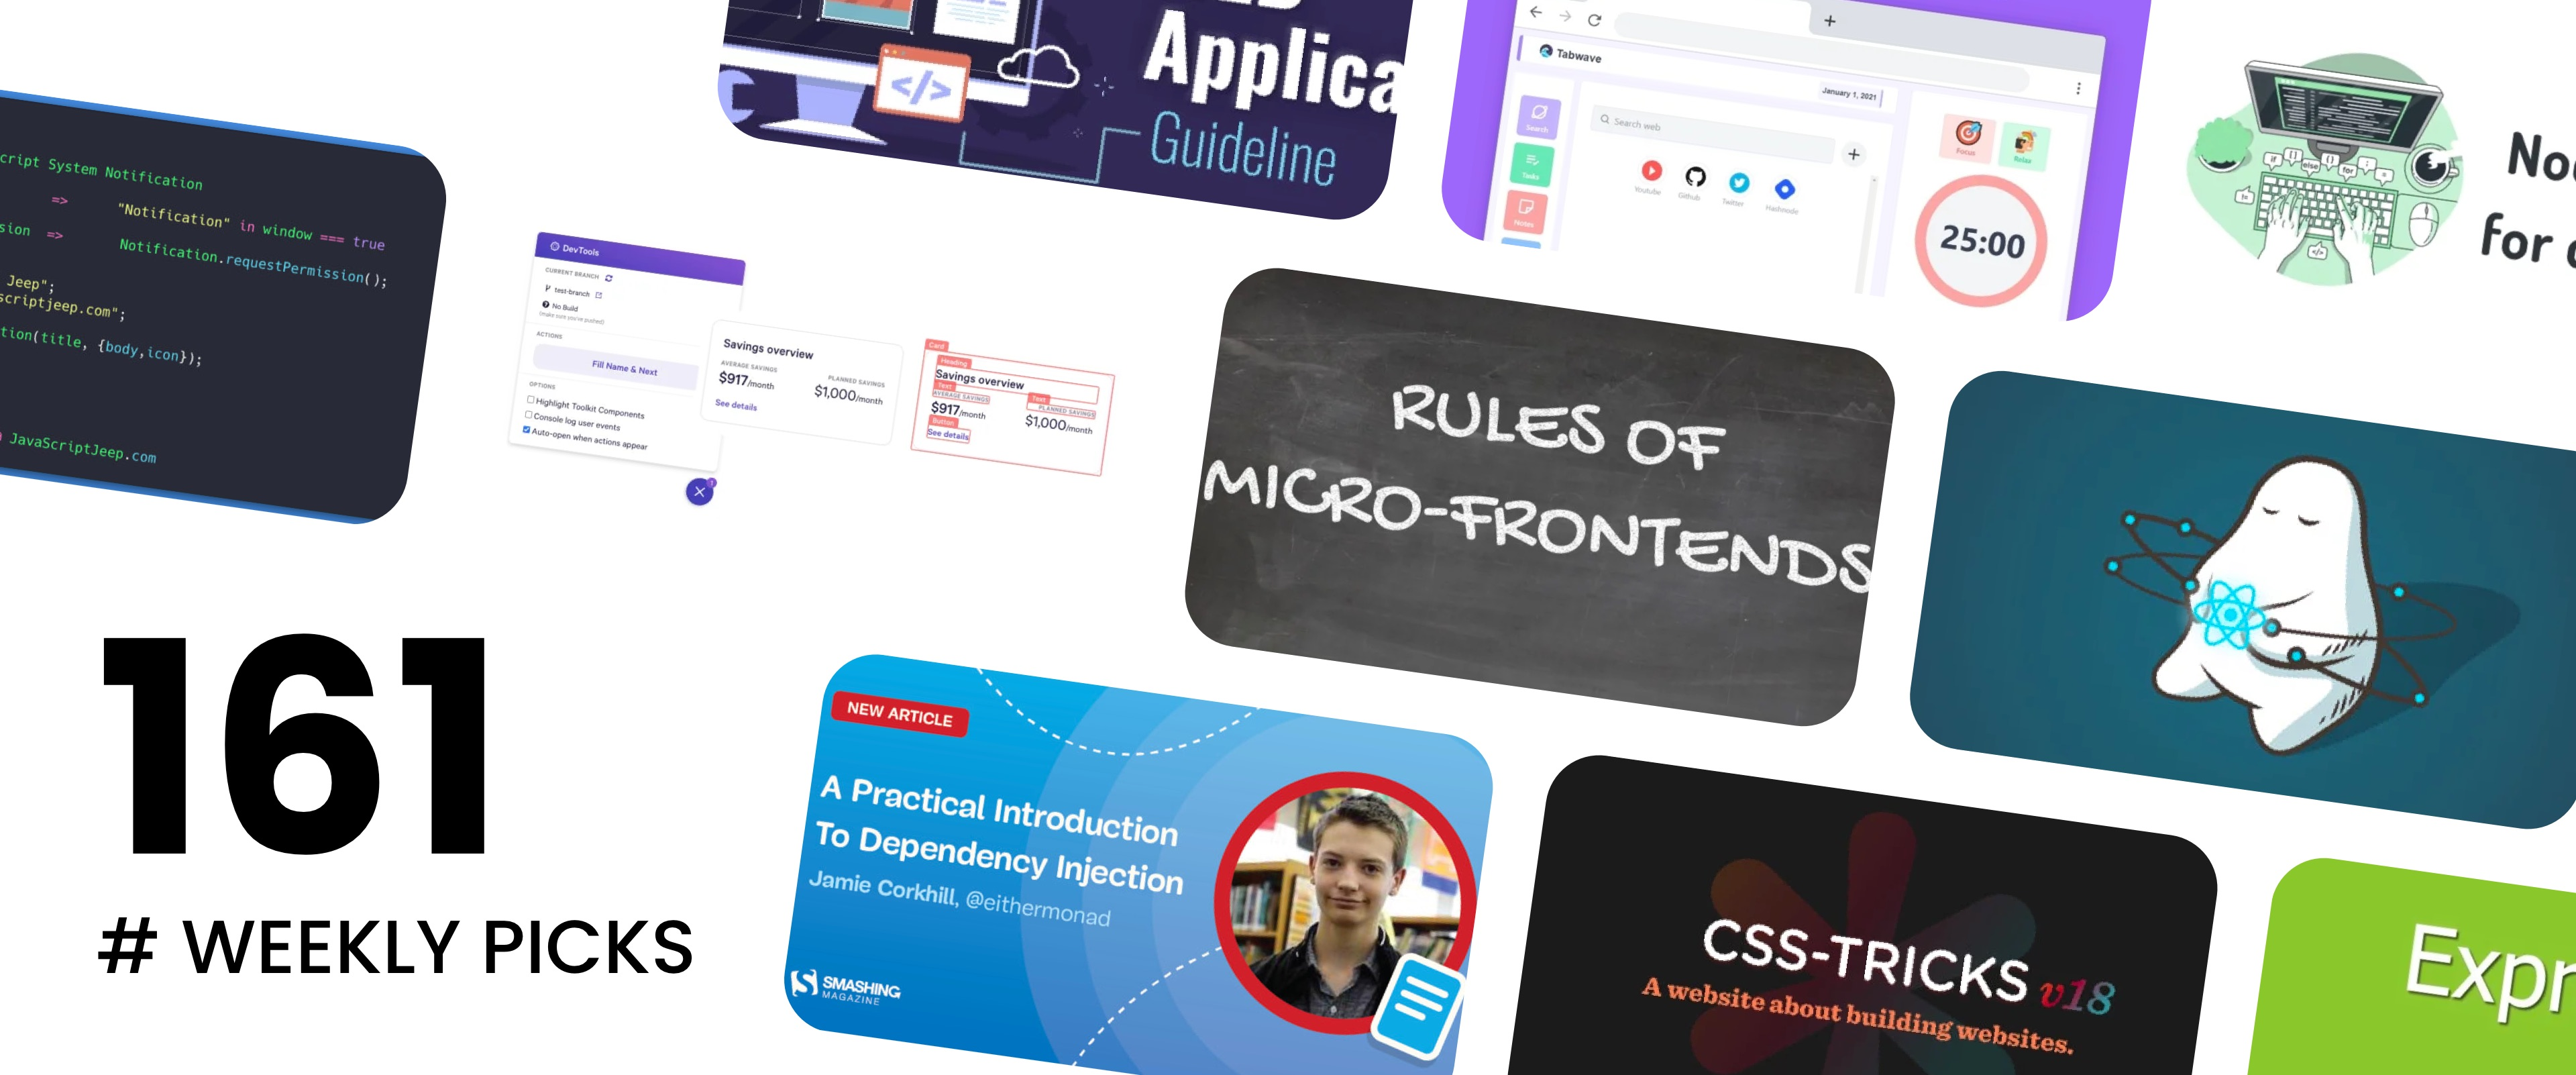 🔥 What's Hot in Web Development? — Weekly Picks #161